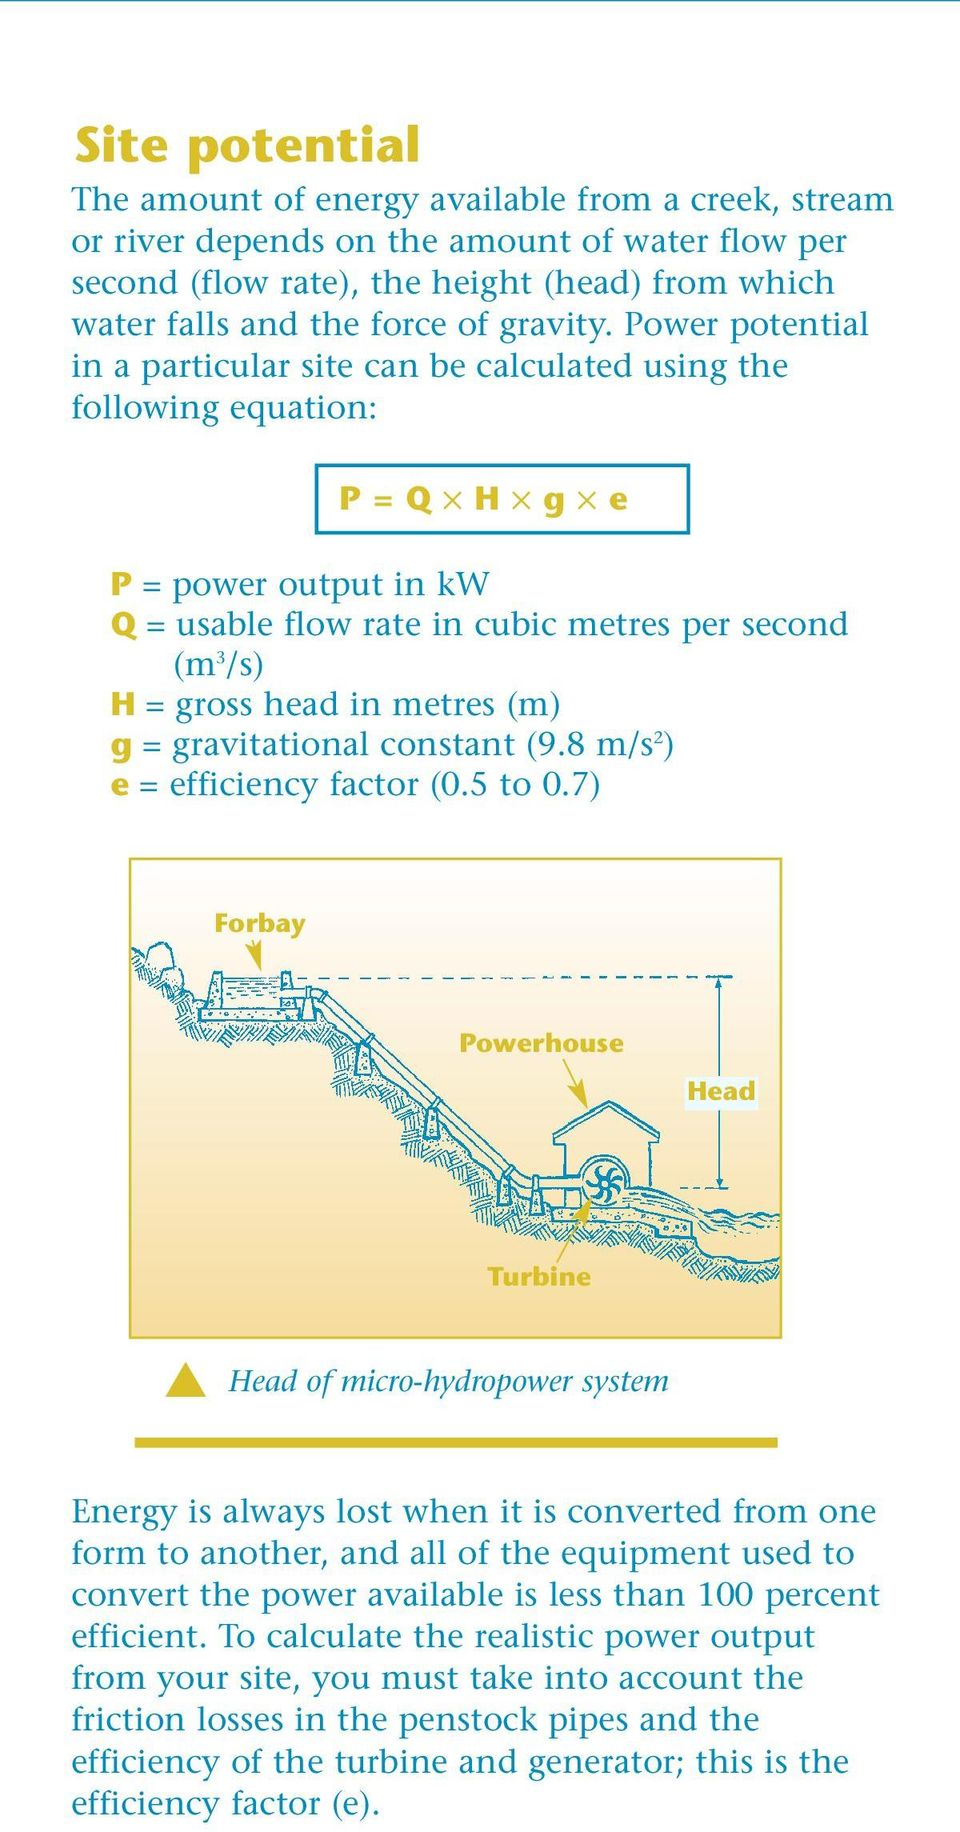 Power potential in a particular site can be calculated using the following equation: P = Q H g e P = power output in kw Q = usable flow rate in cubic metres per second (m 3 /s) H = gross head in